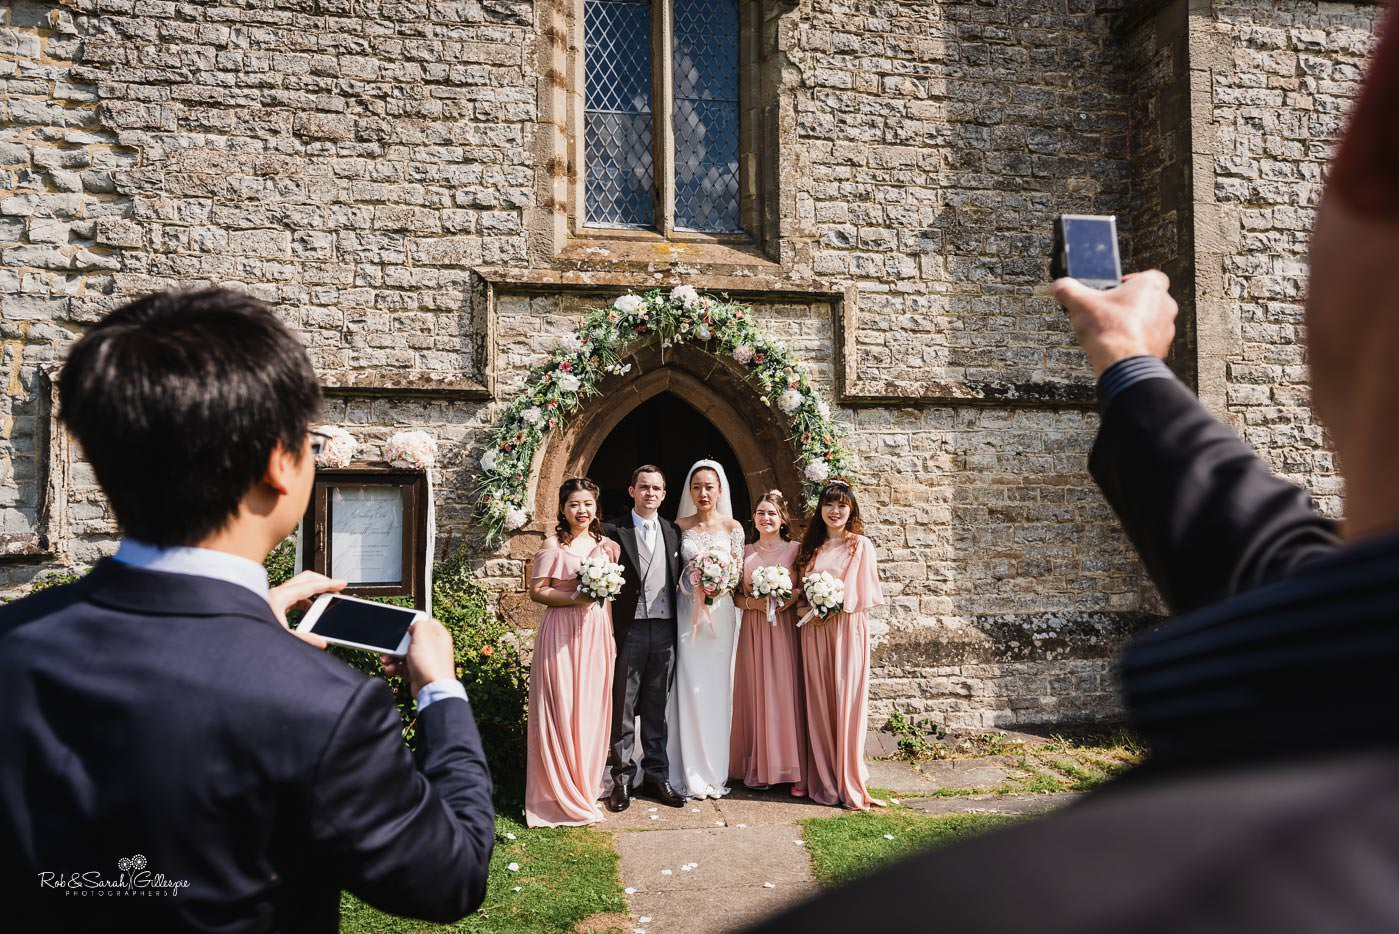 Bridal party pose for guest photos at Bourton-on-Dunsmore church